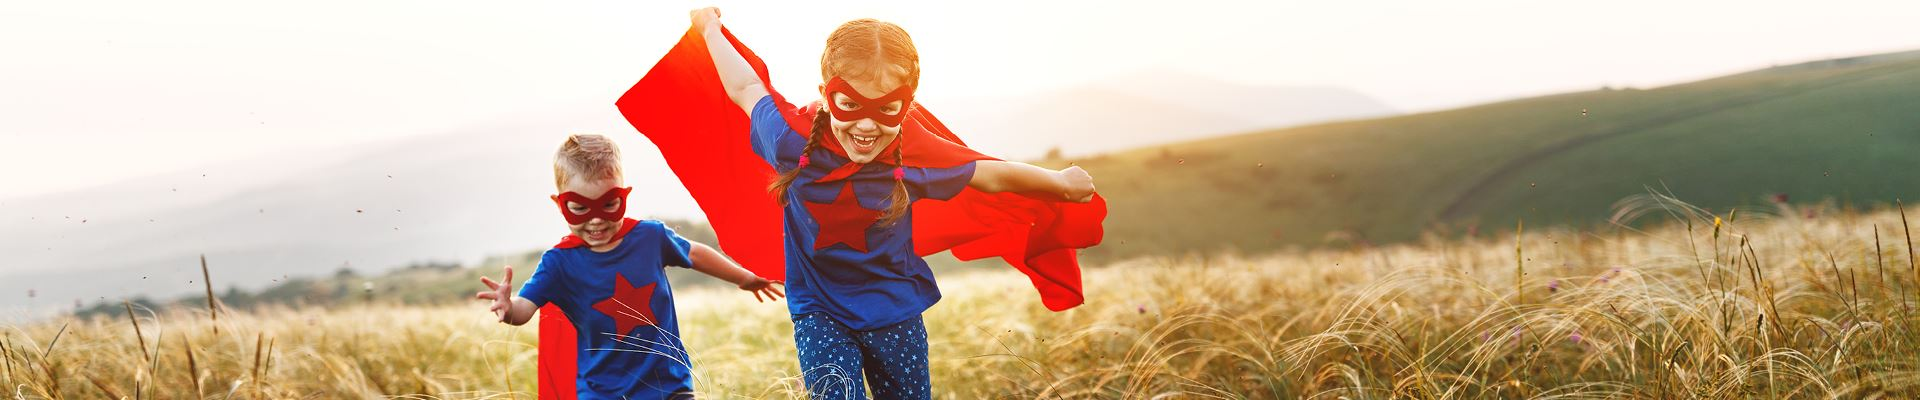 Two children in superhero capes play outside in a field or valley area.